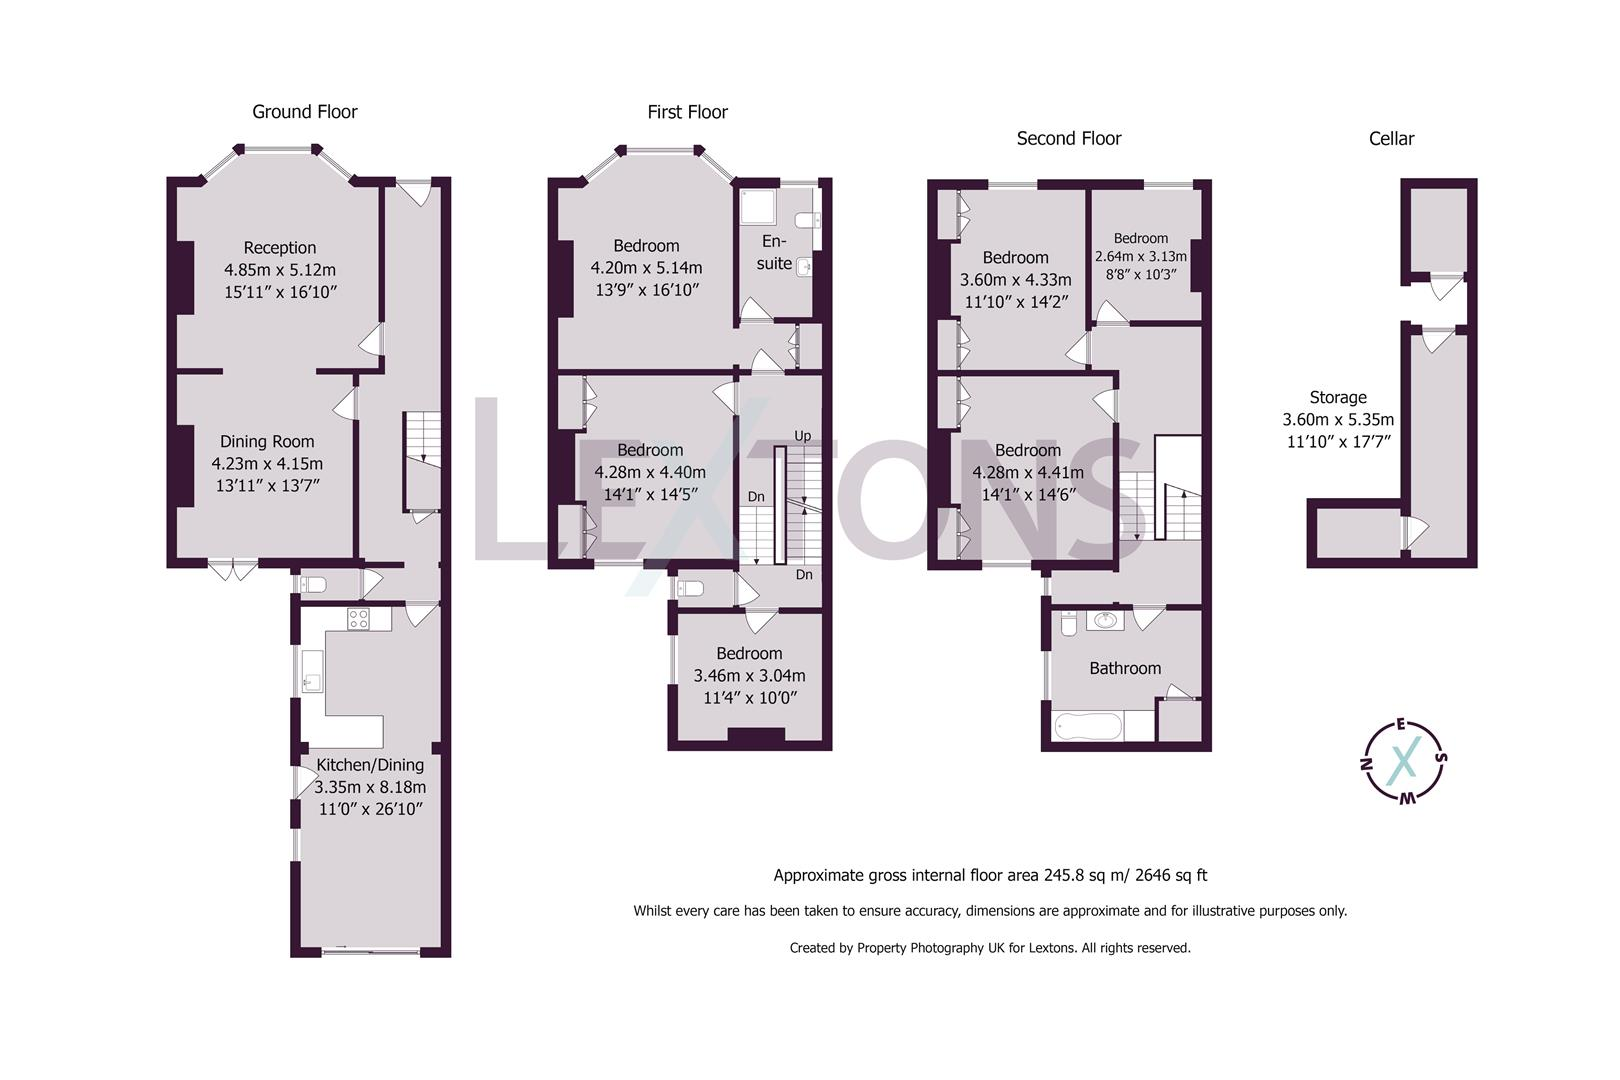 Floorplans For Westbourne Villas, Hove